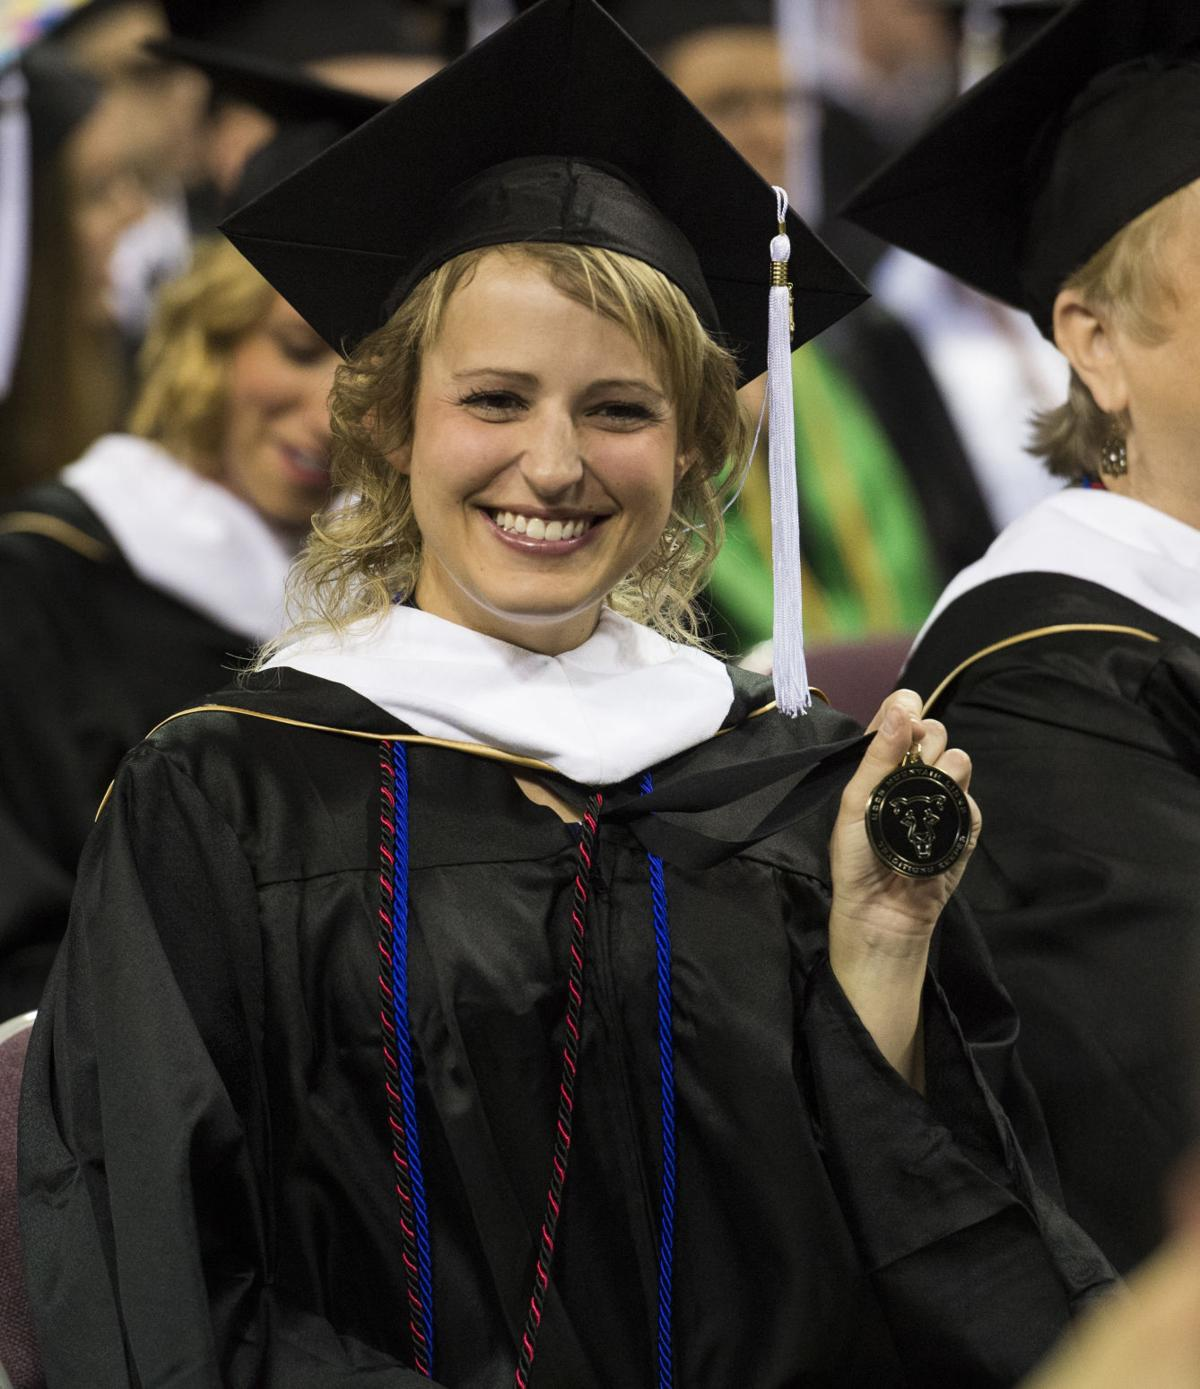 Highlights from the University of Colorado at Colorado Springs' morning commencement ceremonies Friday, May 12, 2017, at the Broadmoor World Arena in Colorado Springs. A record 1,532 students received their degrees this Spring.  (The Gazette, Christian Murdock)